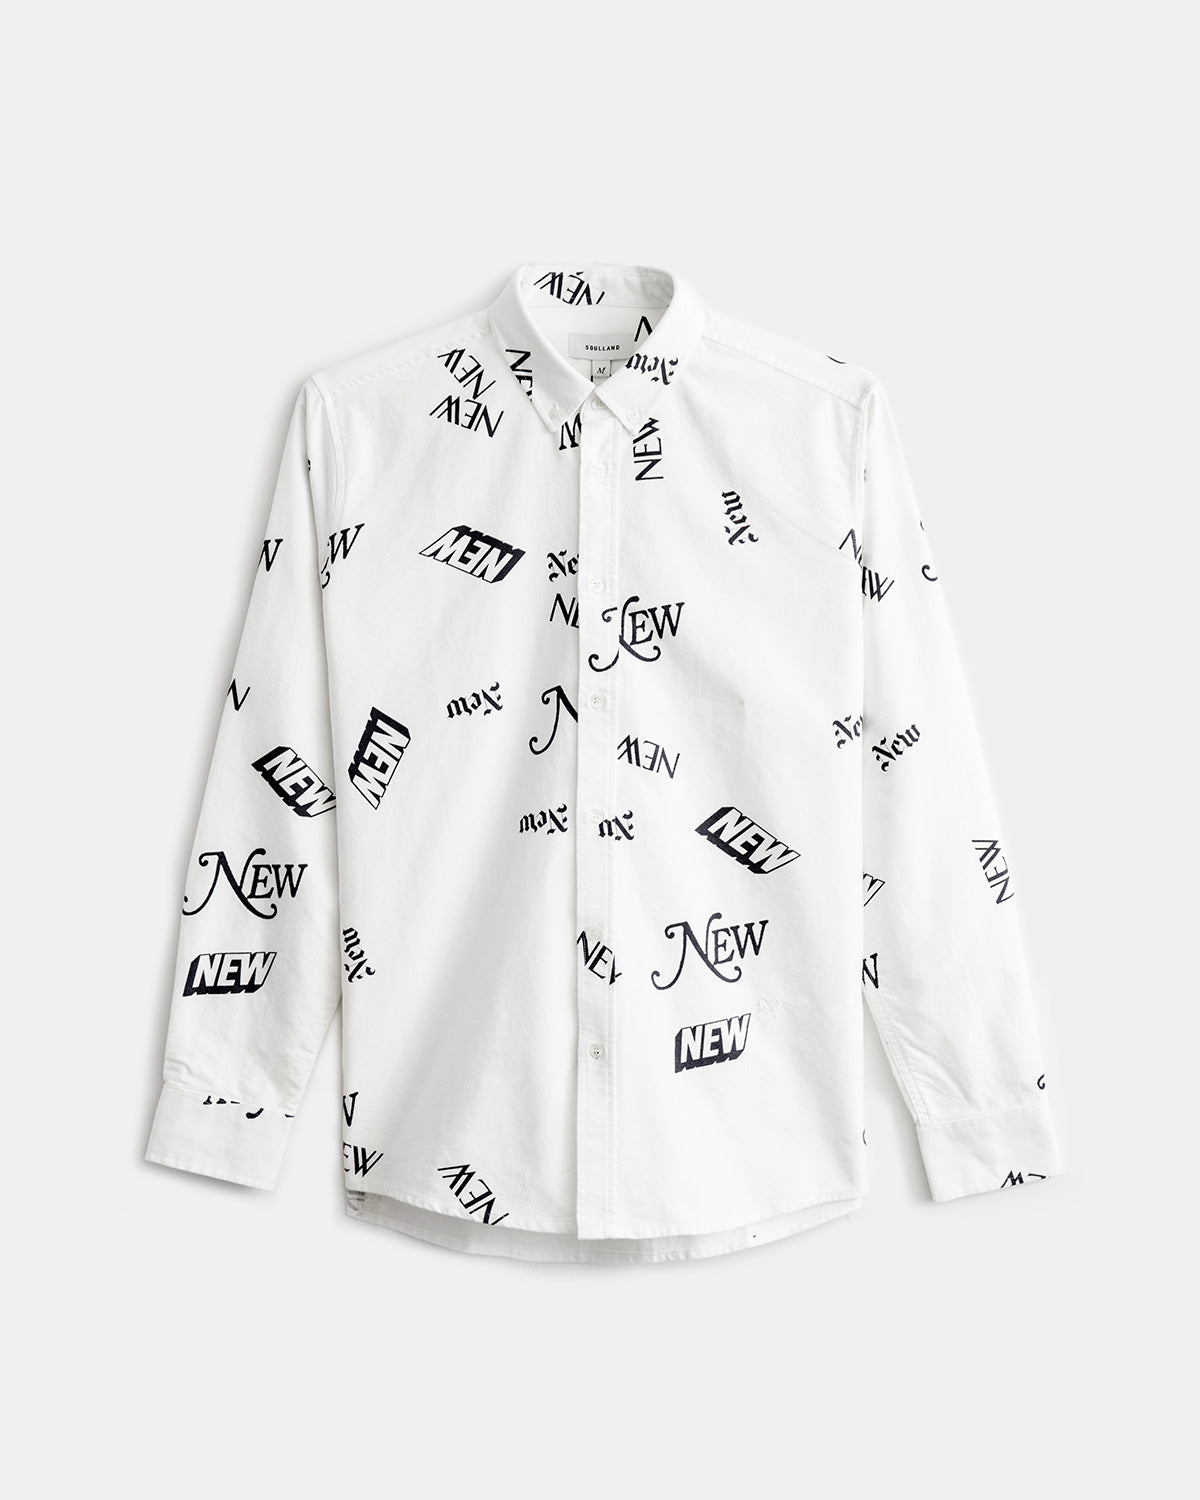 Soulland - All Shirt (White | All Over Print)